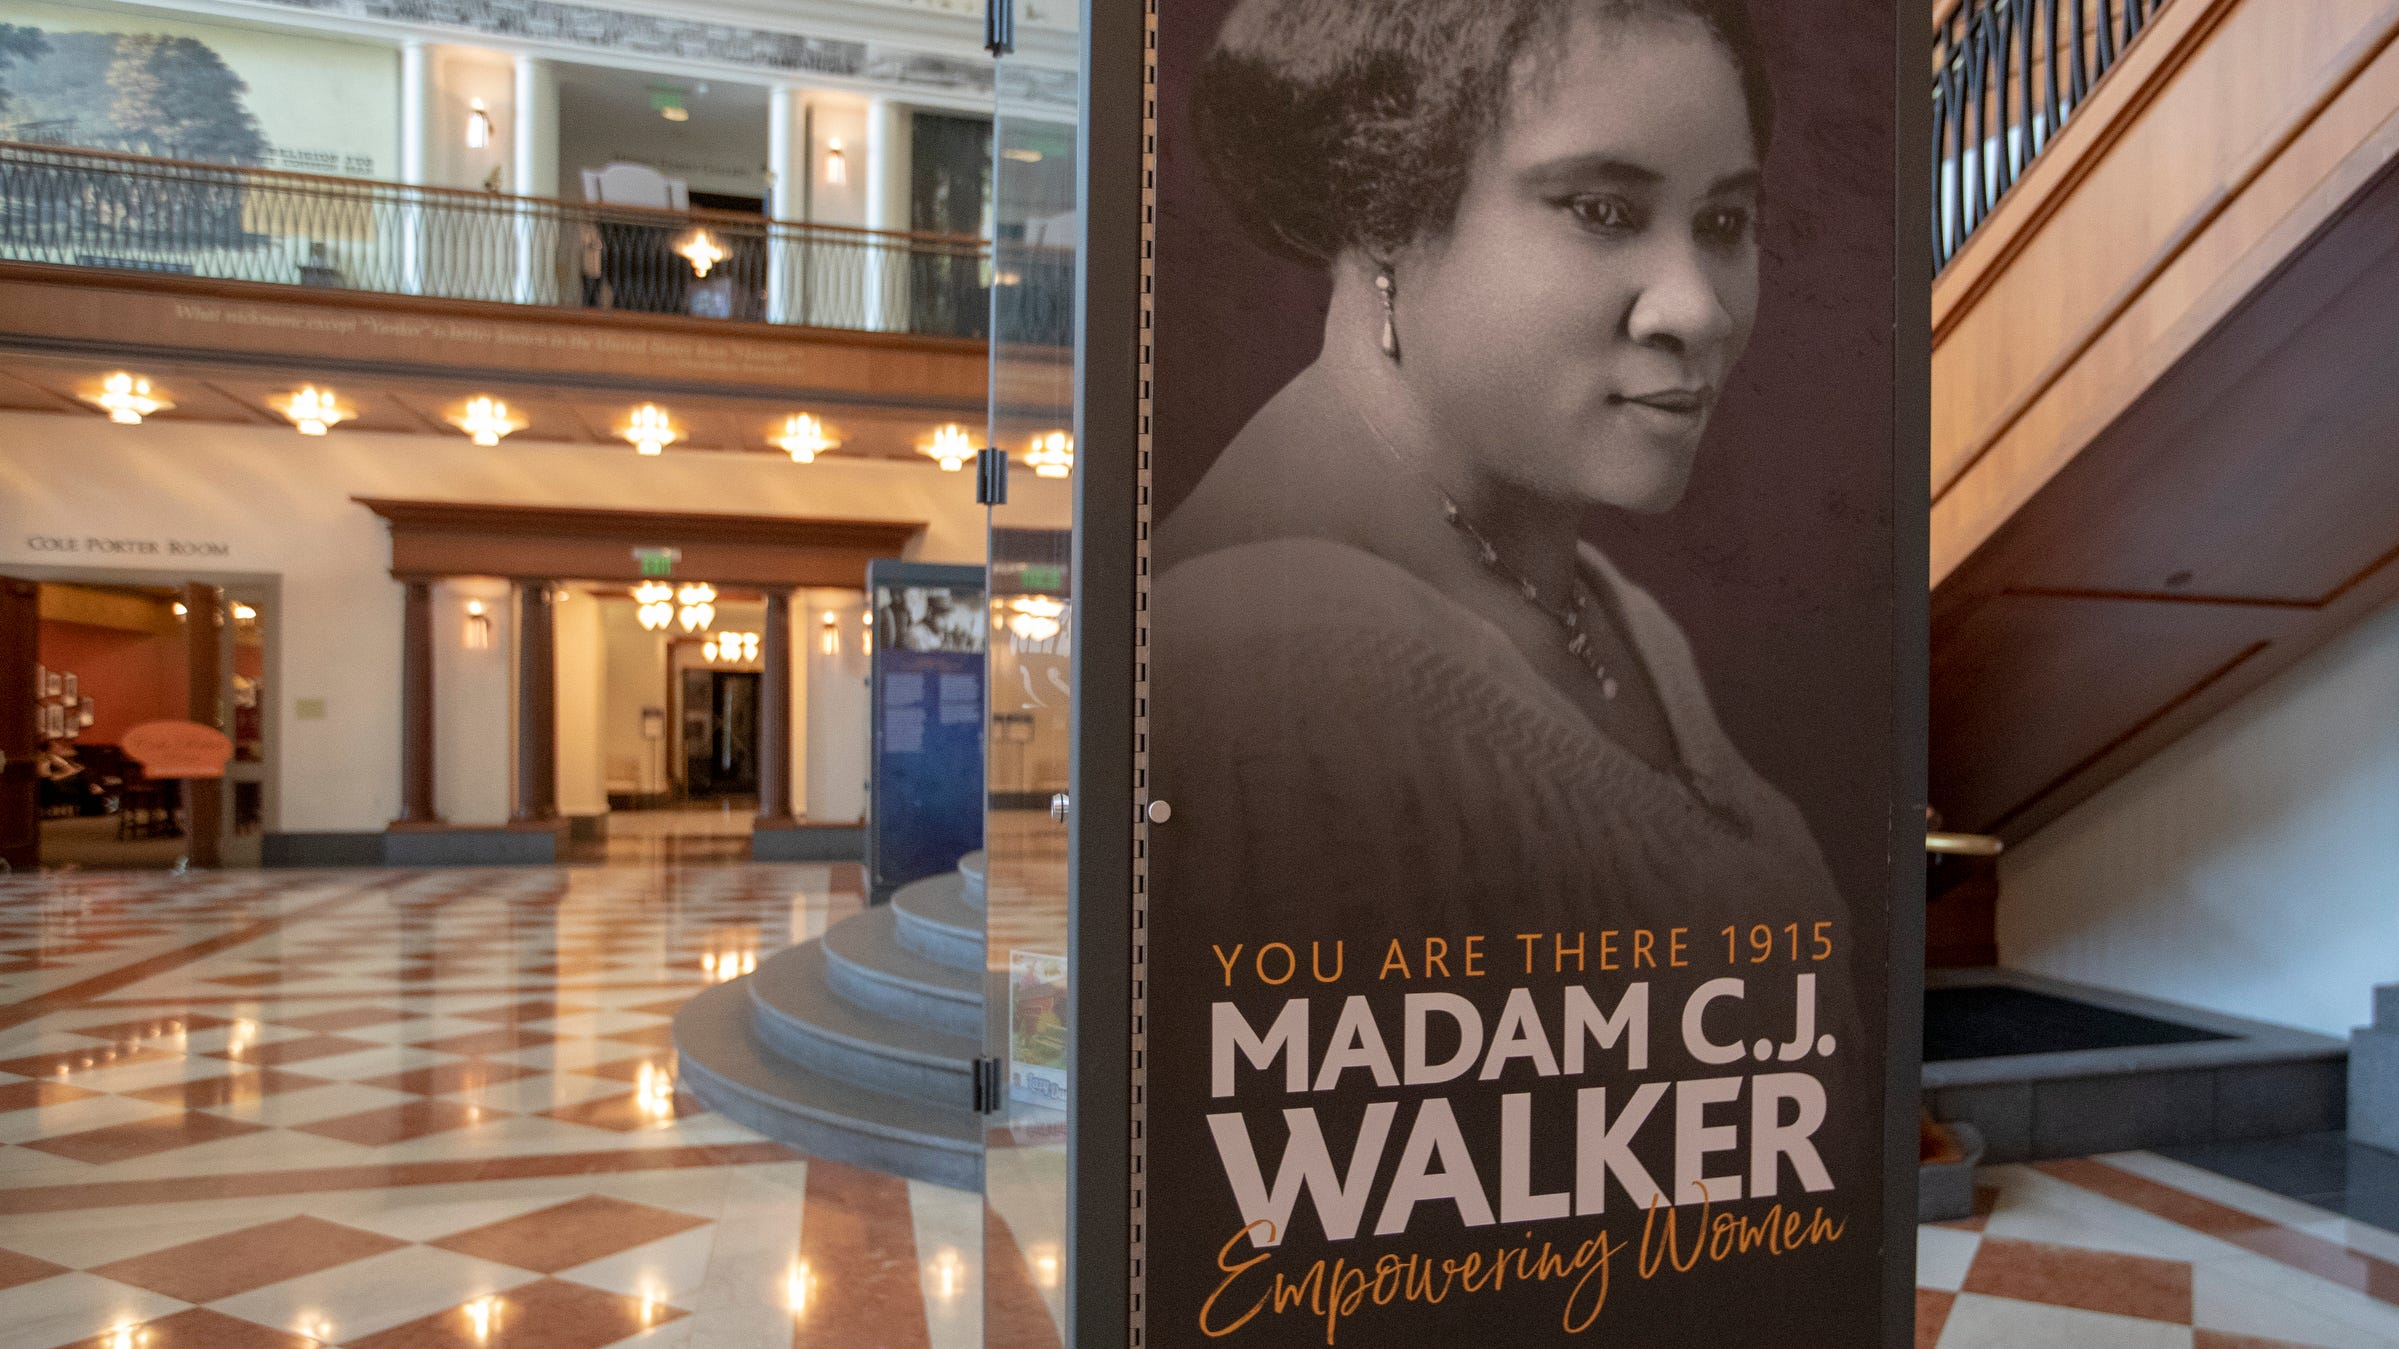 Madam C J Walker What The Indiana Historical Society Exhibit Shows